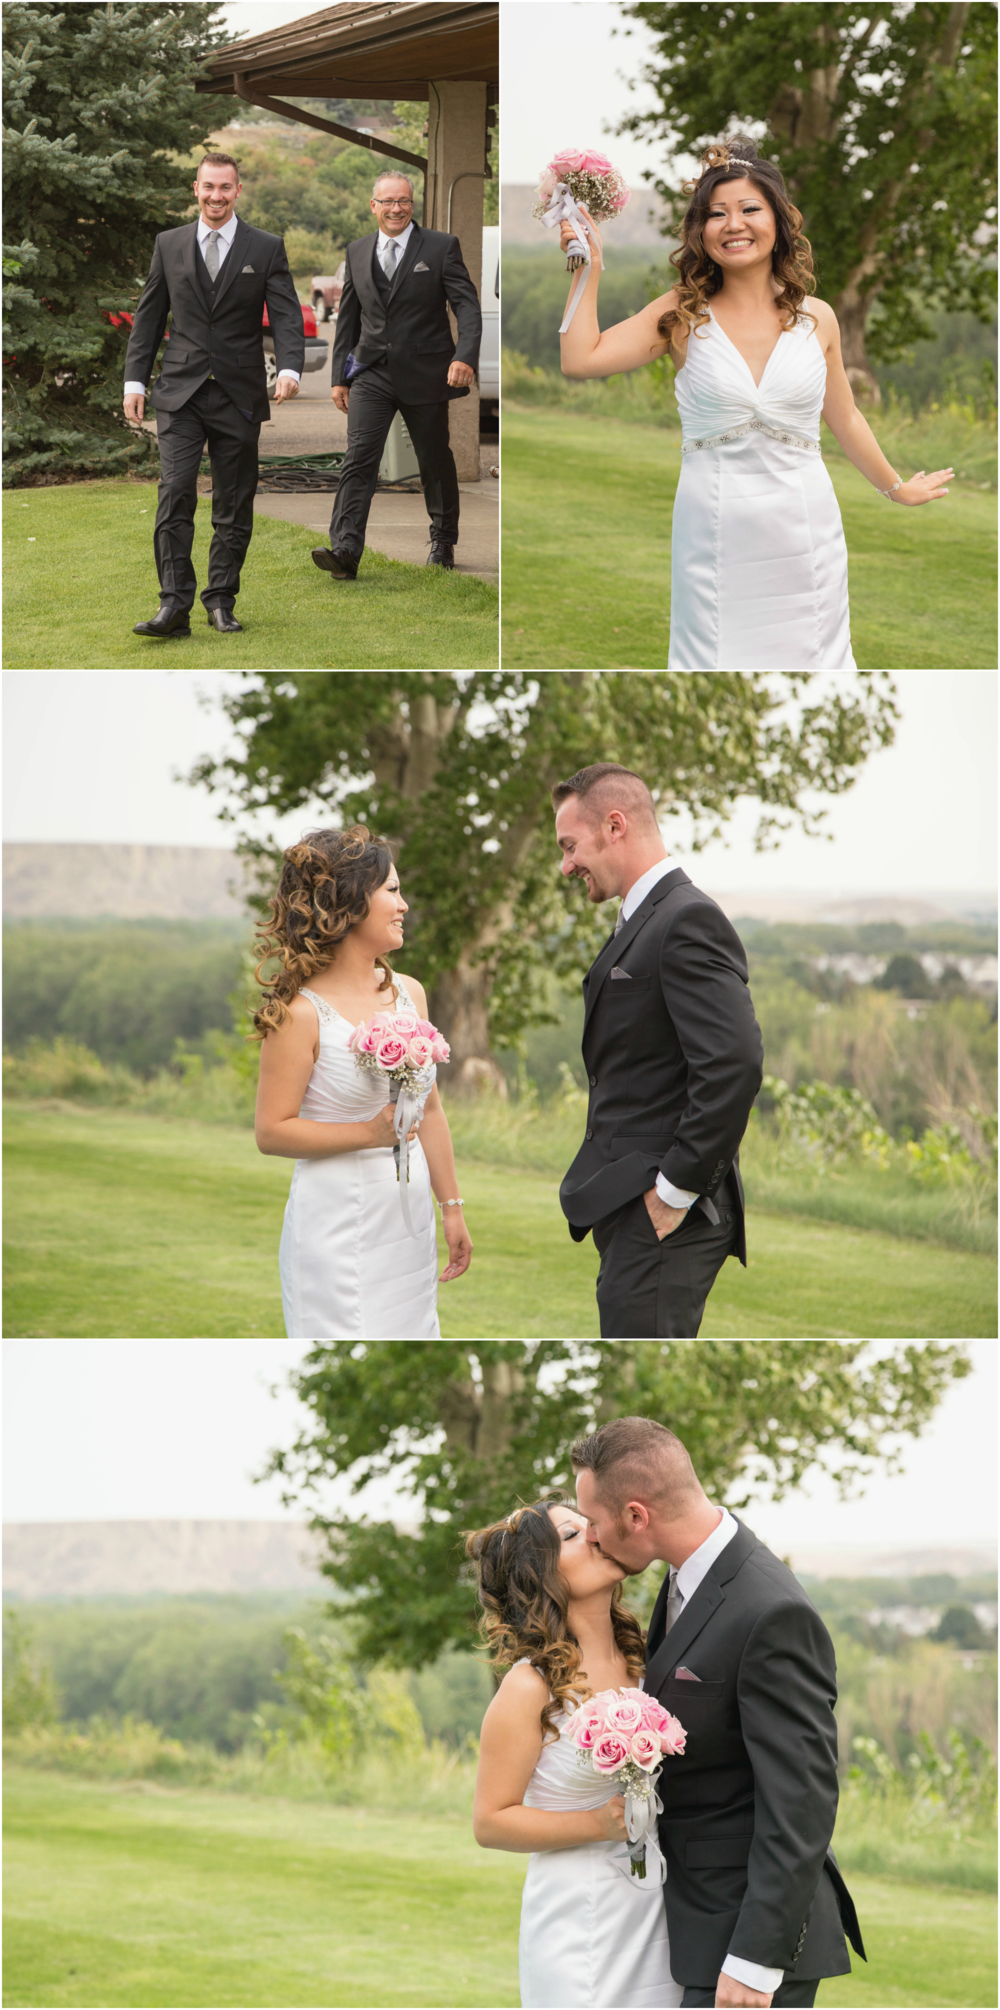 medicine-hat-golf-course-wedding_01a.png